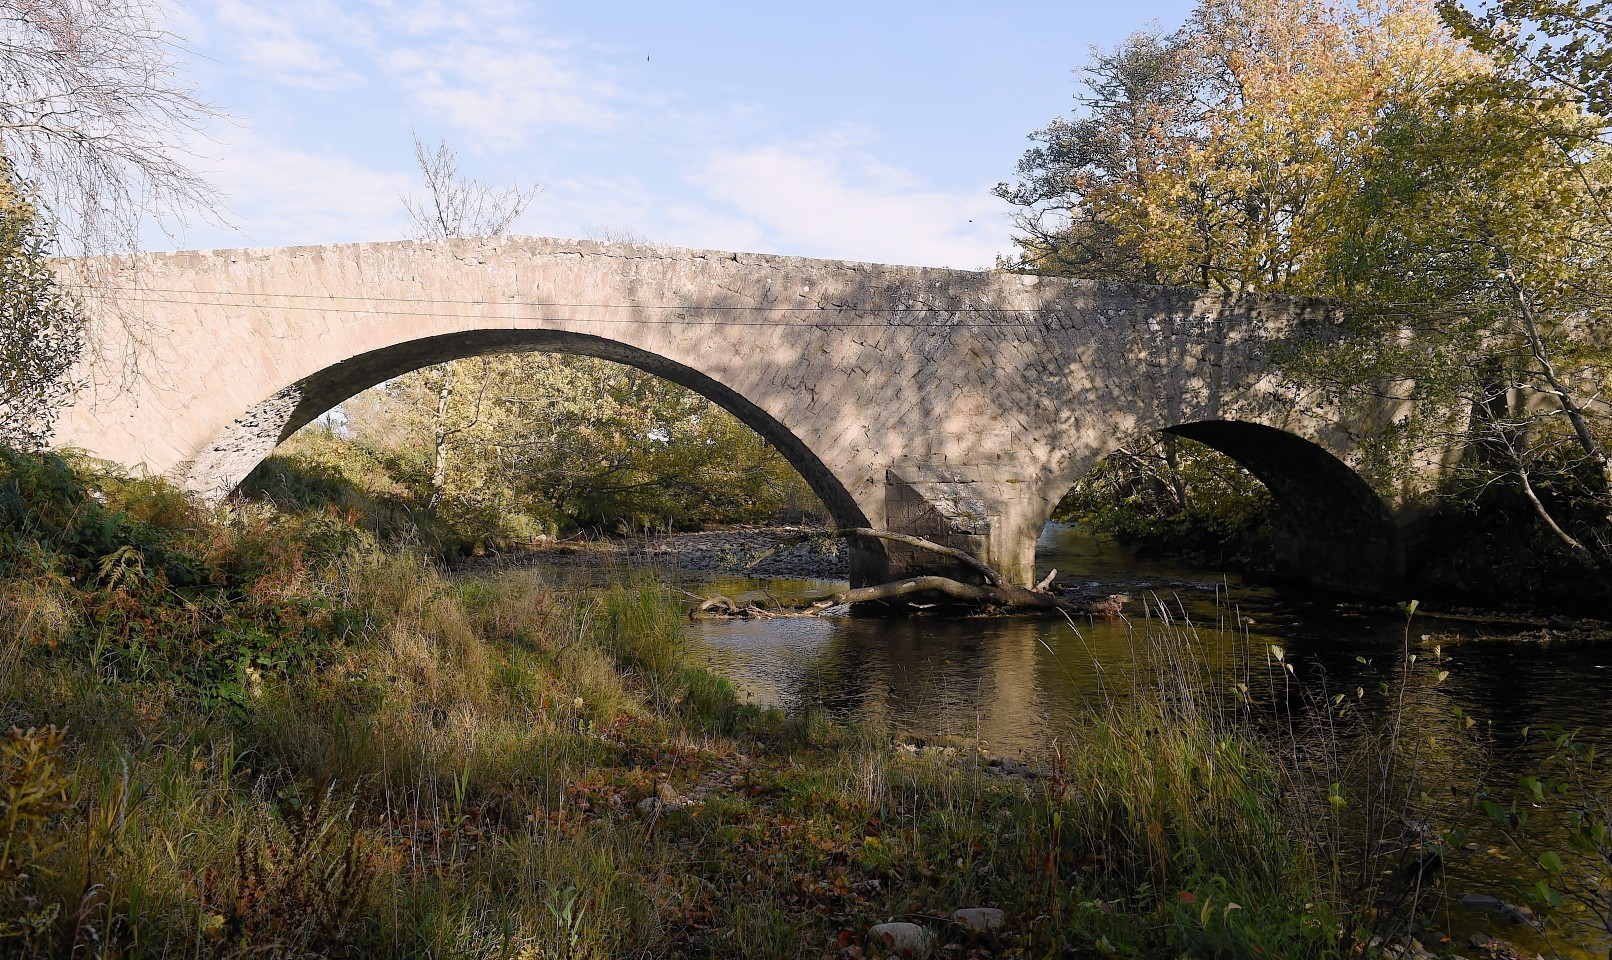 The White Bridge between Clephanton and Cawdor